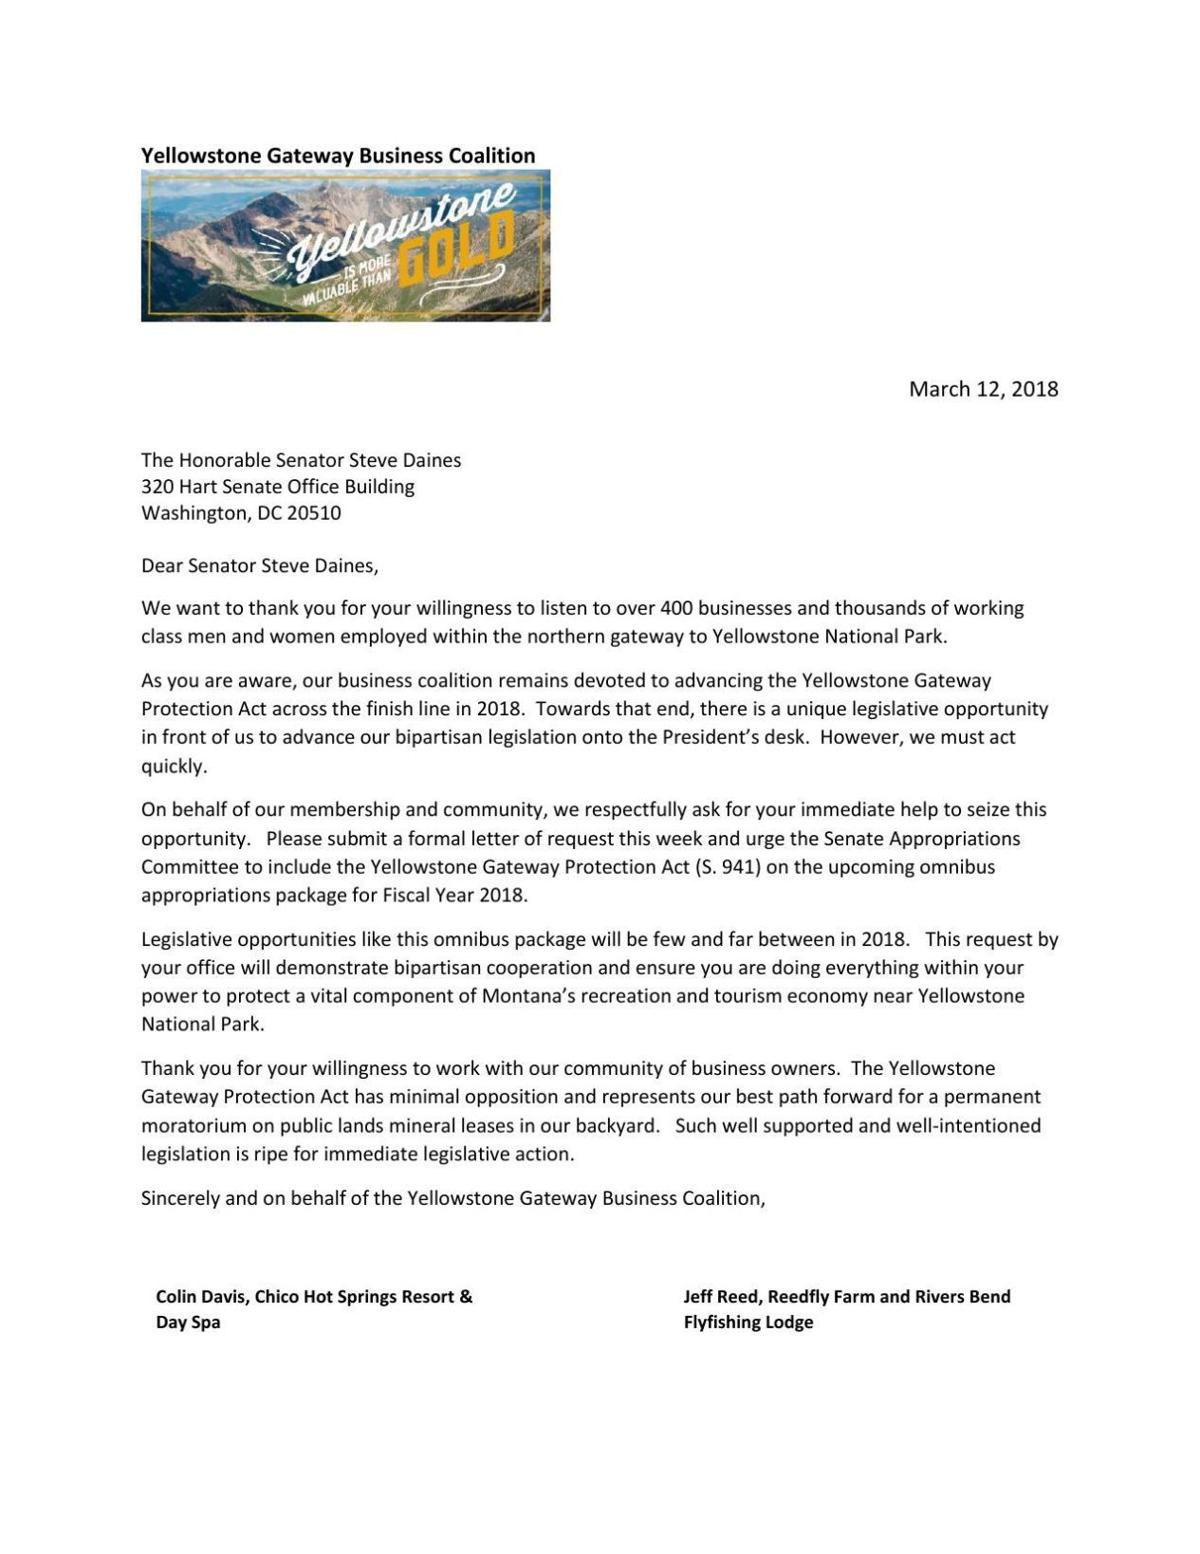 download pdf yellowstone gateway business coalition letter